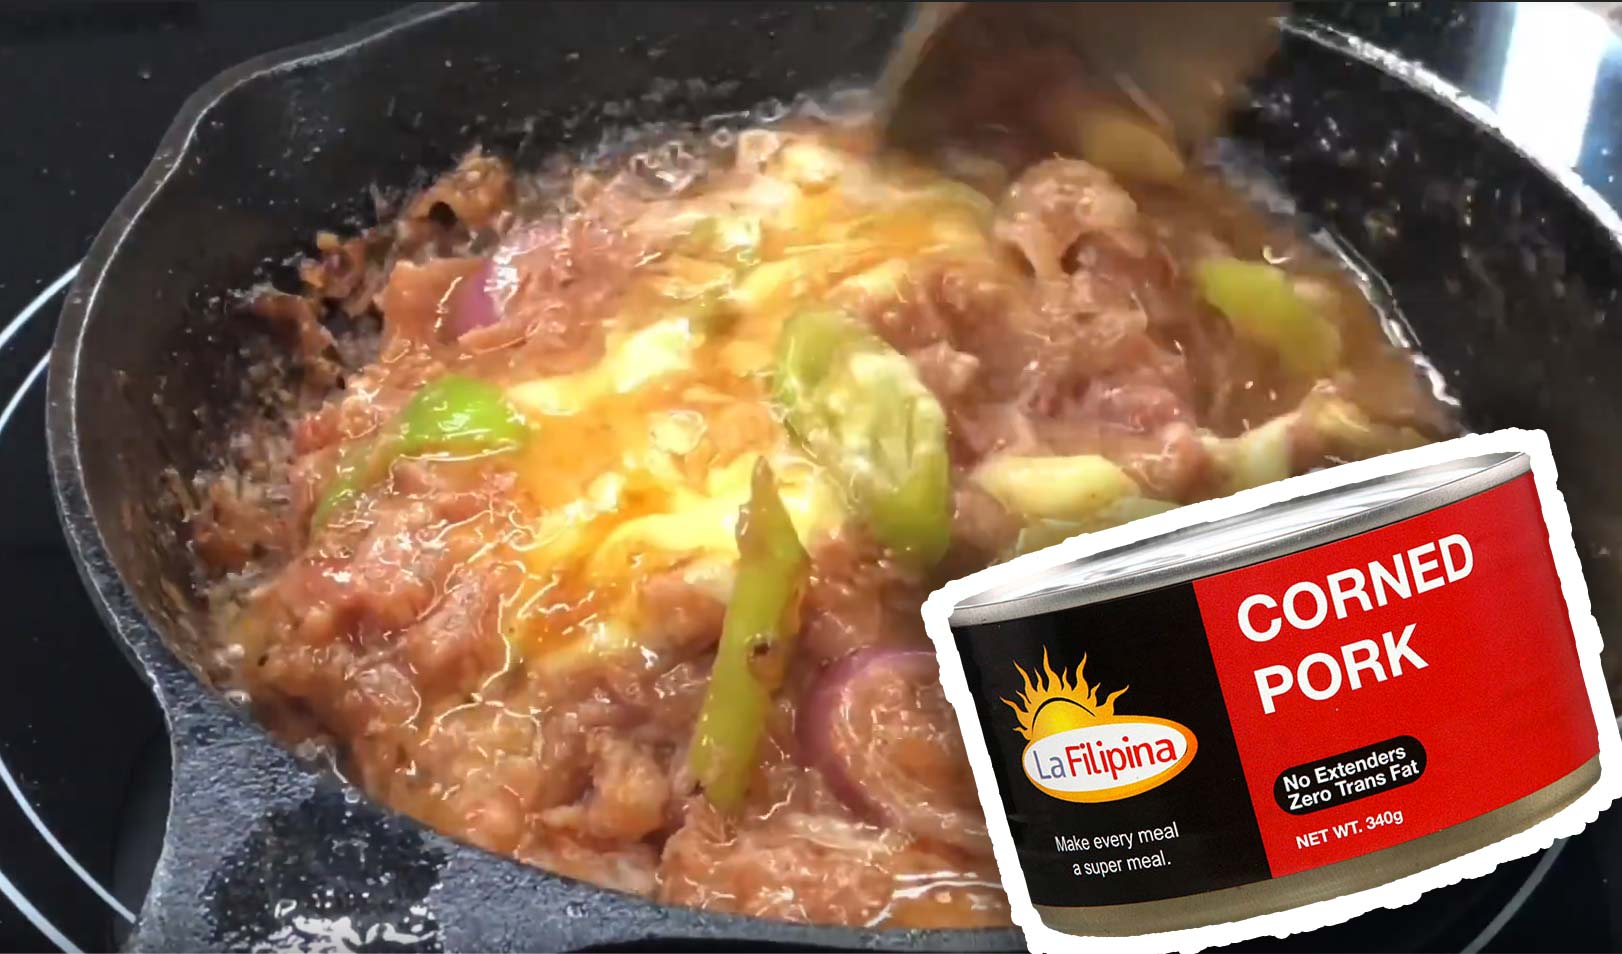 Sizzling Barbecue Corned Pork With Cheese Pulutan Recipe